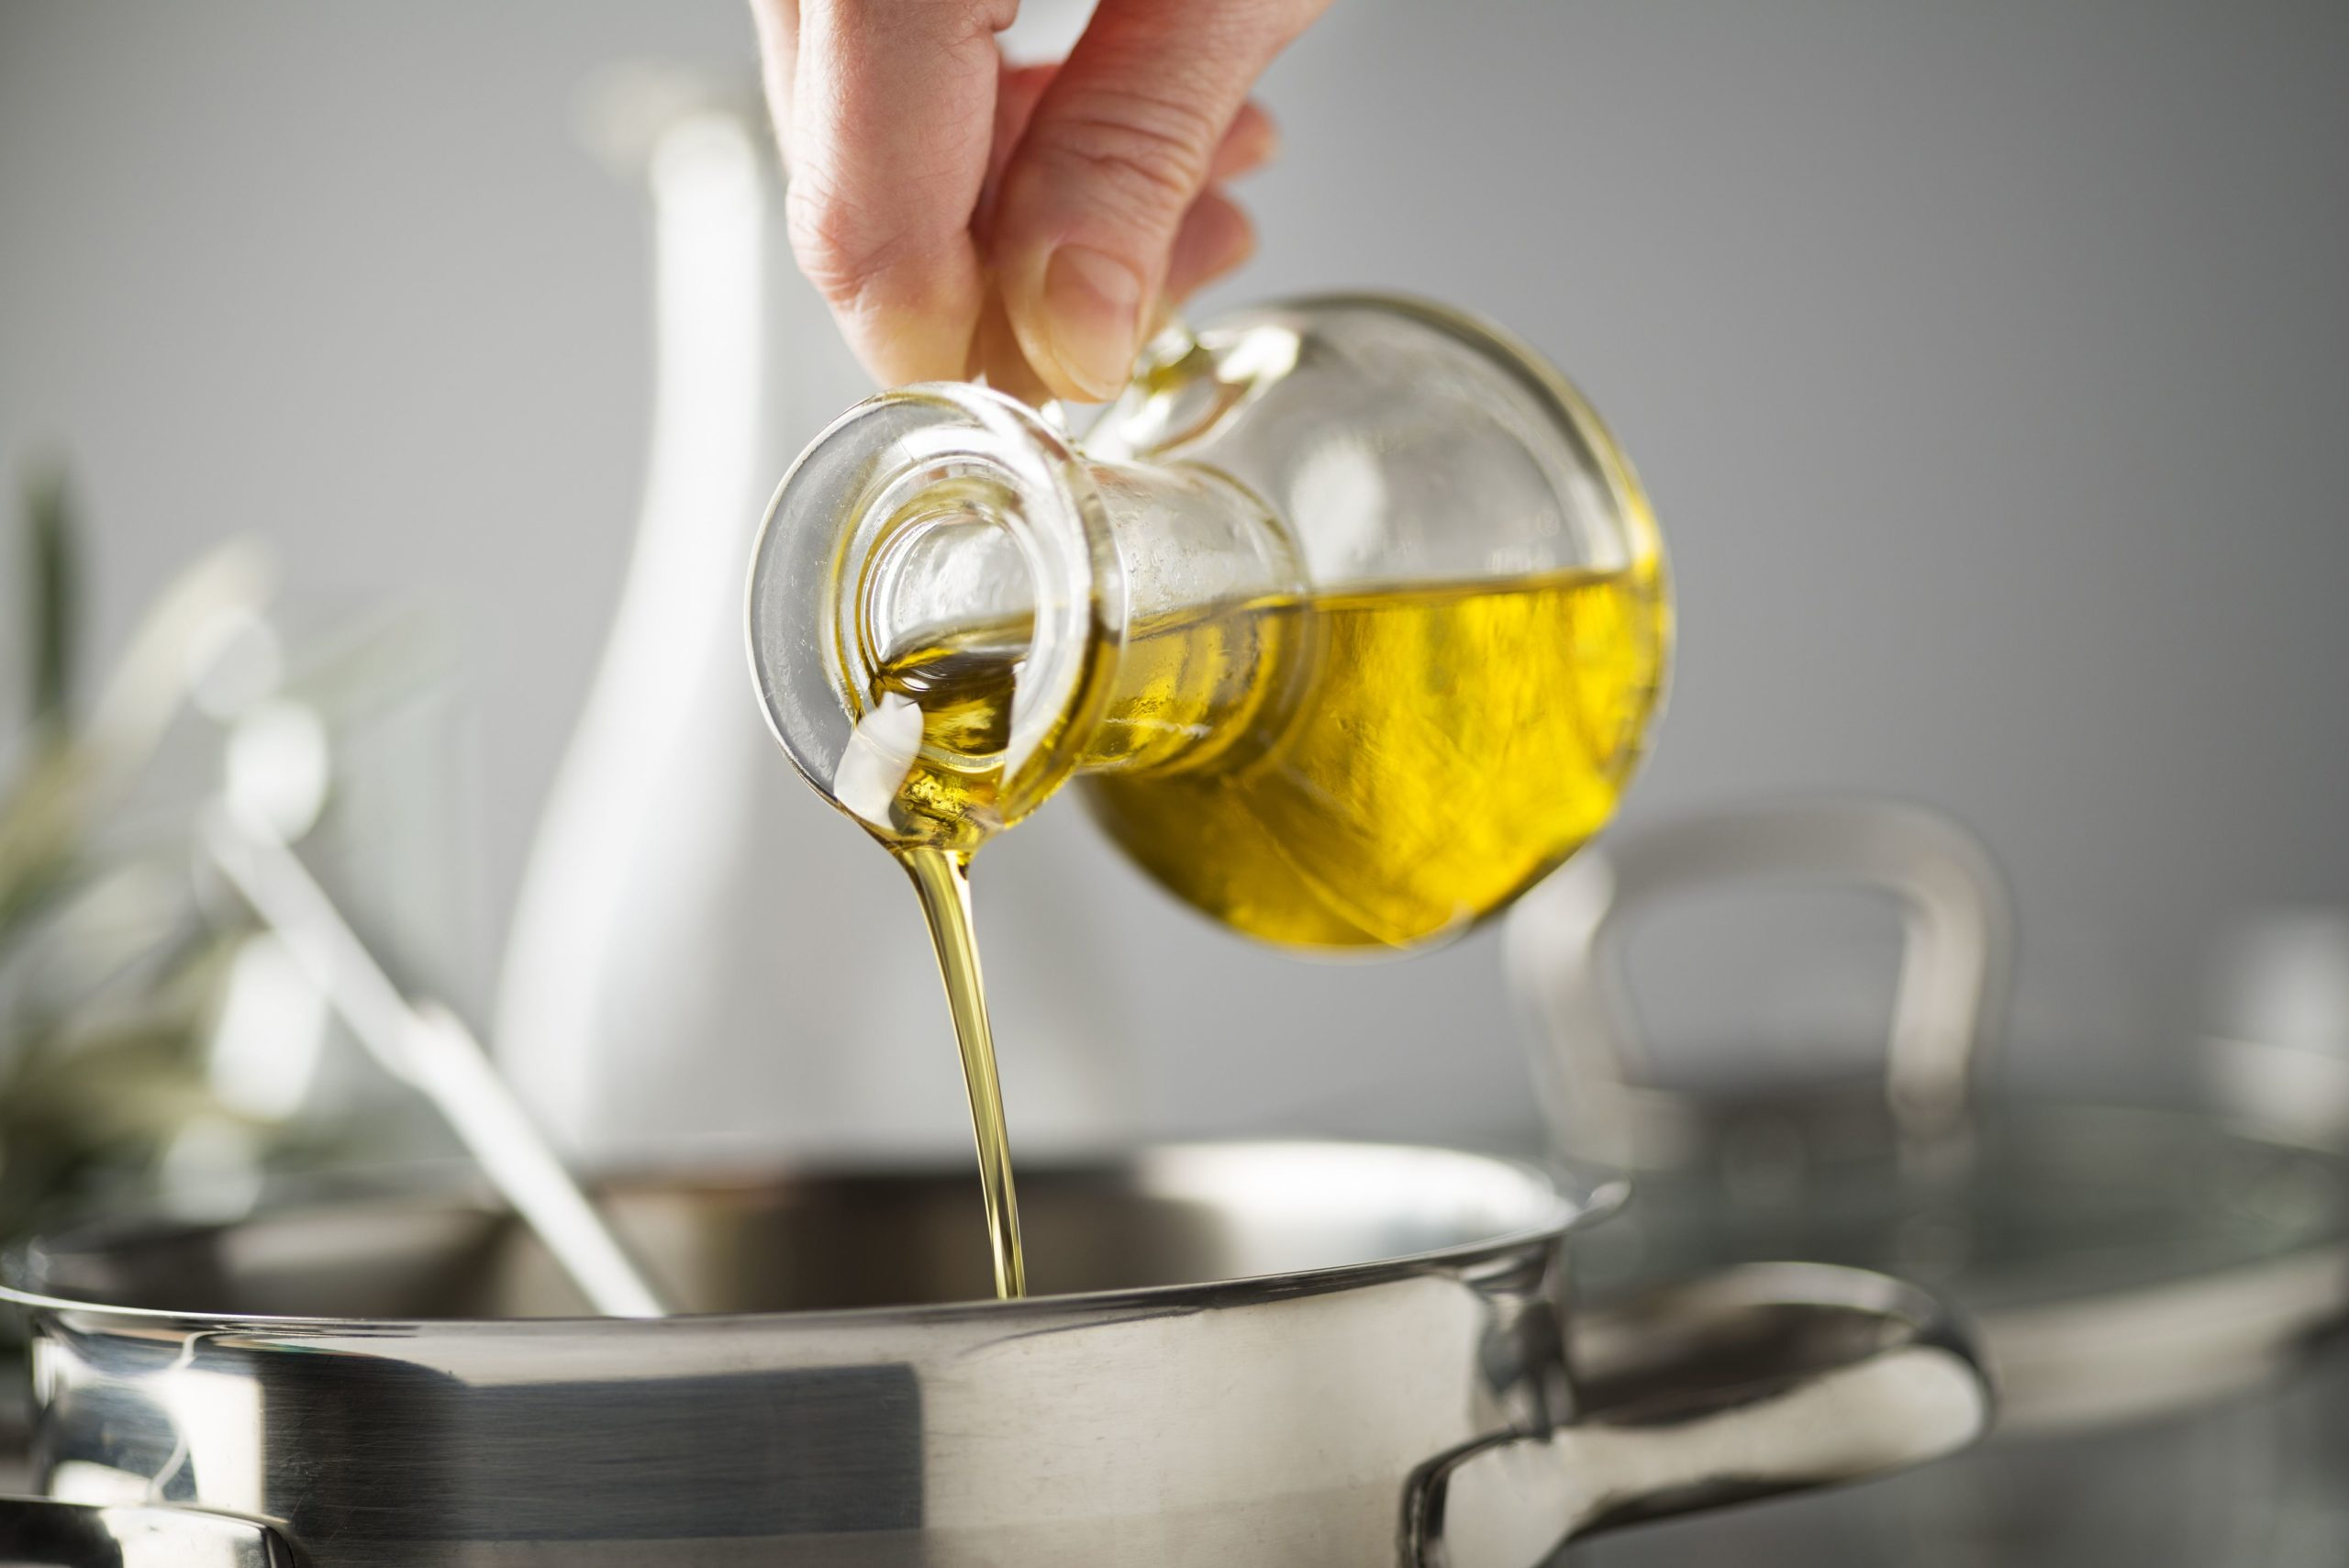 Can You Substitute Vegetable Oil for Olive Oil